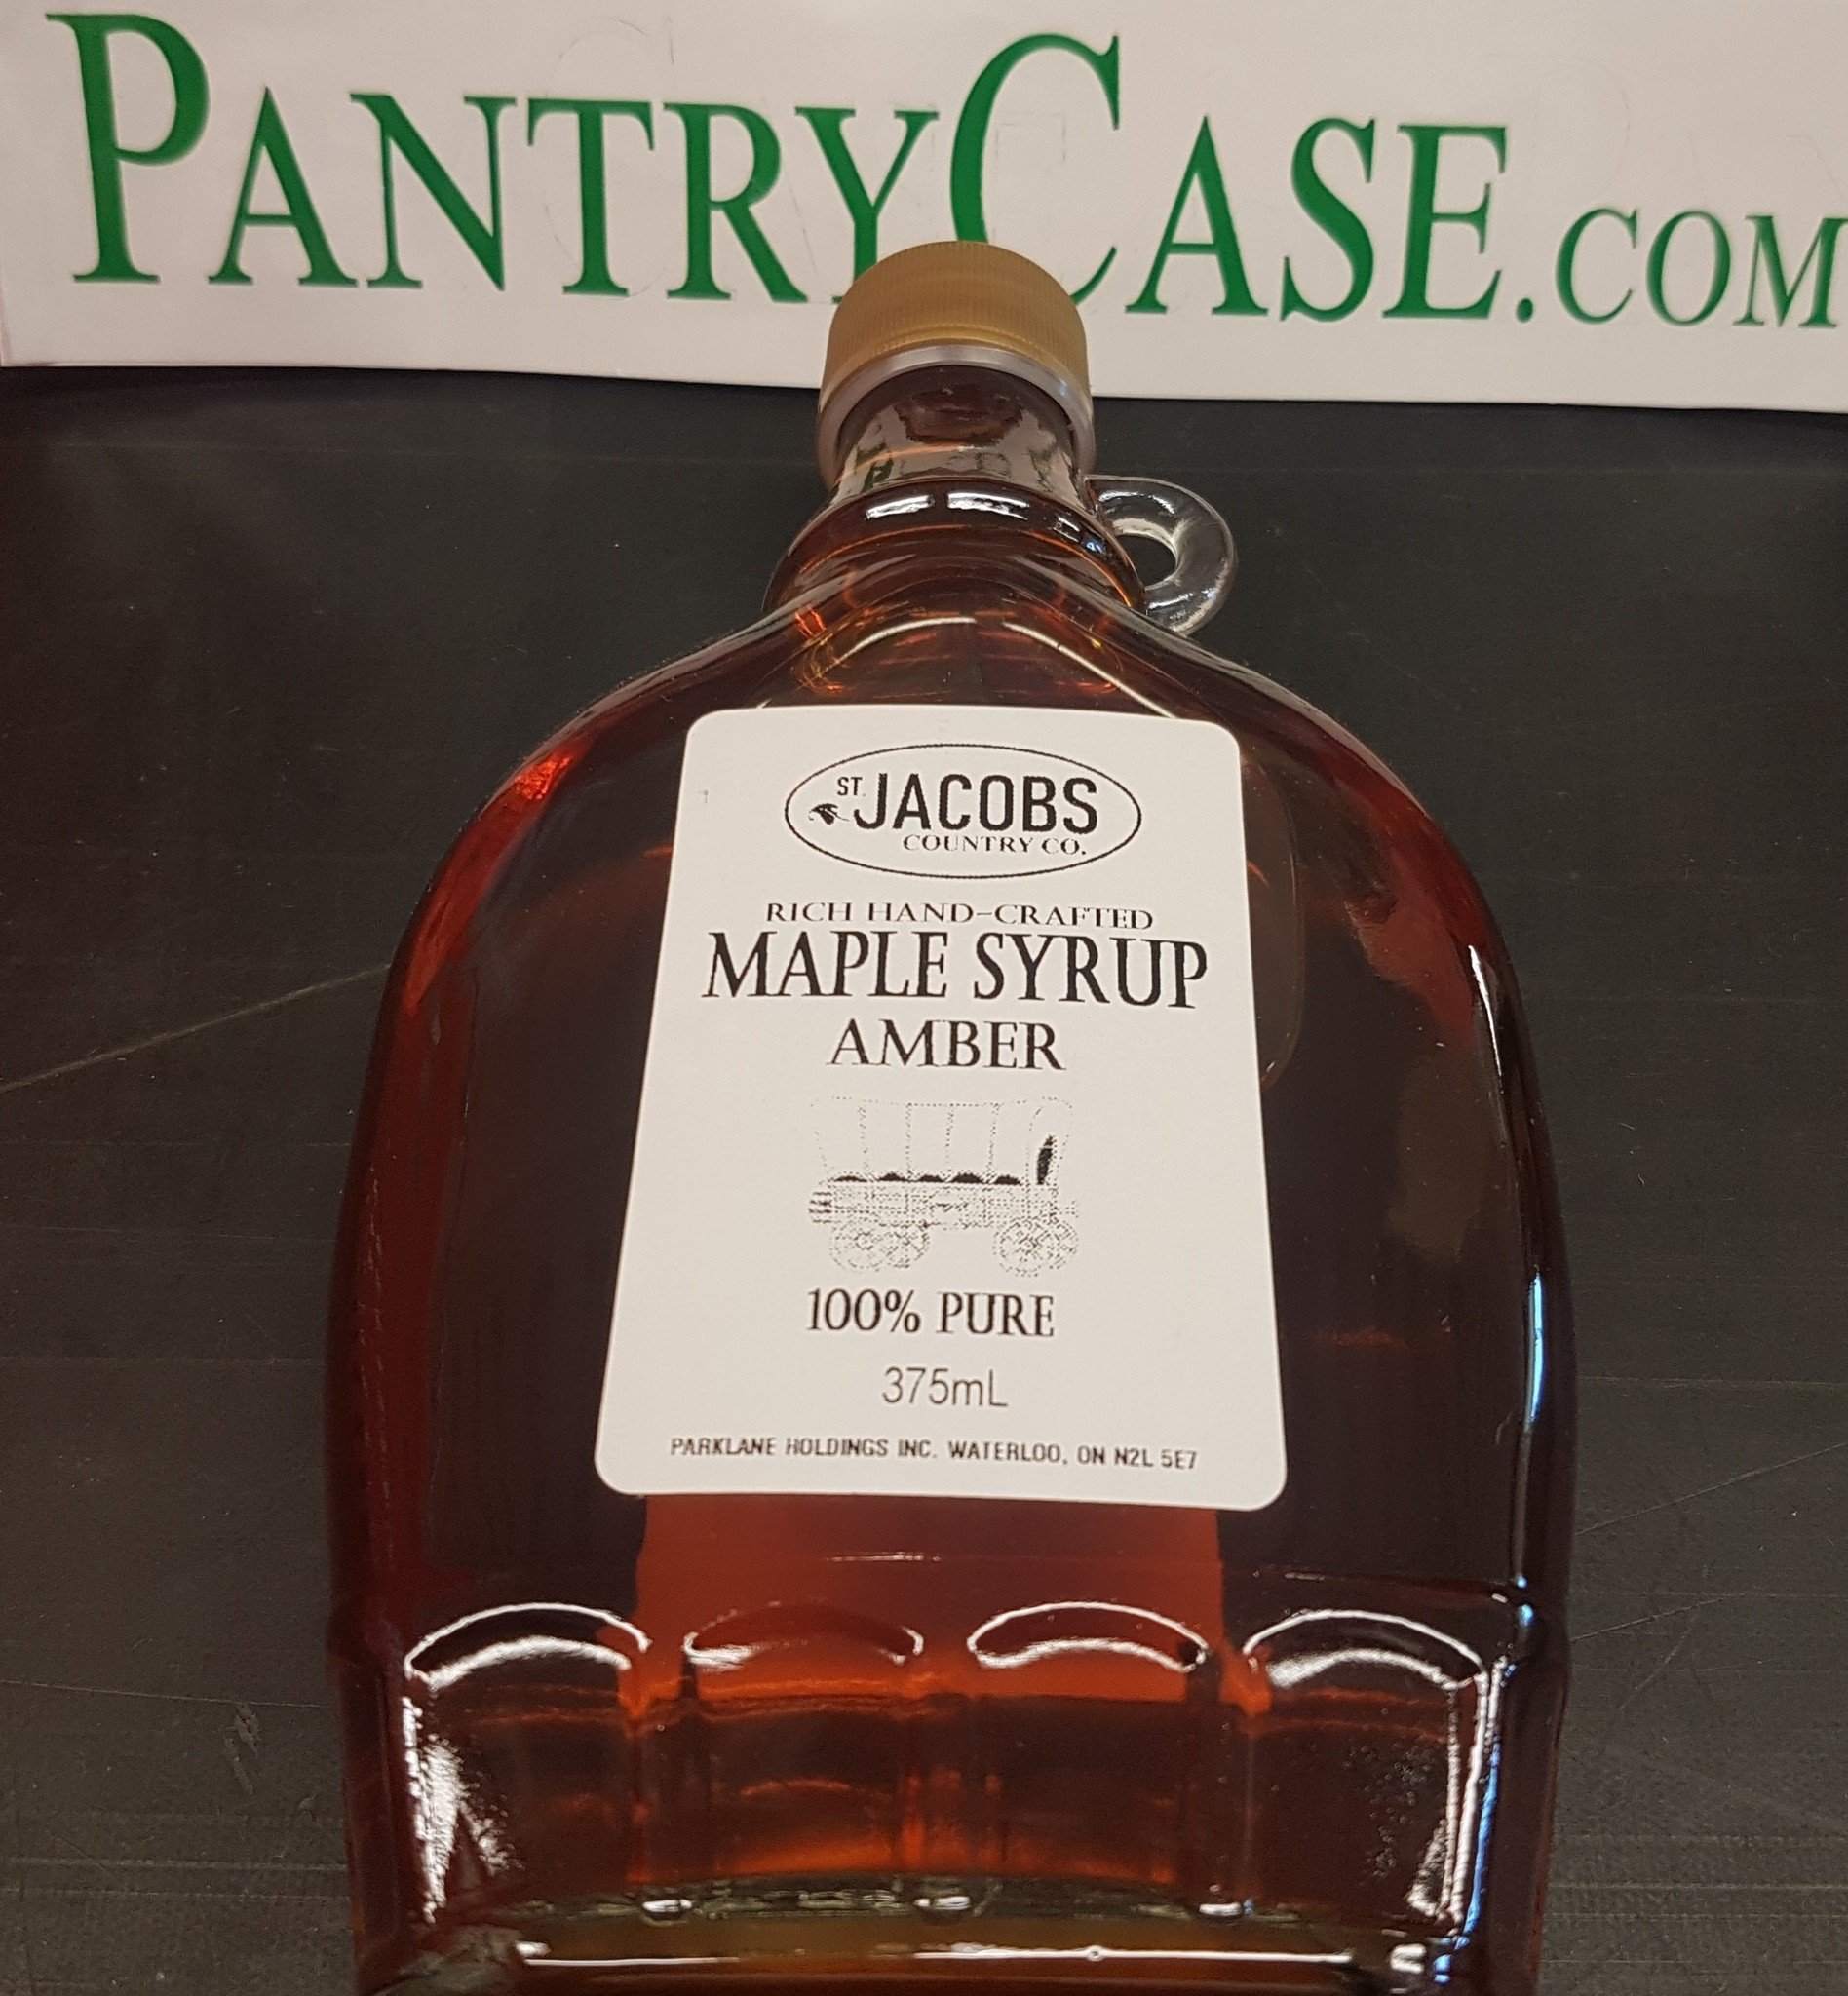 St Jacobs Country St Jacobs Amber Maple Syrup 375ml